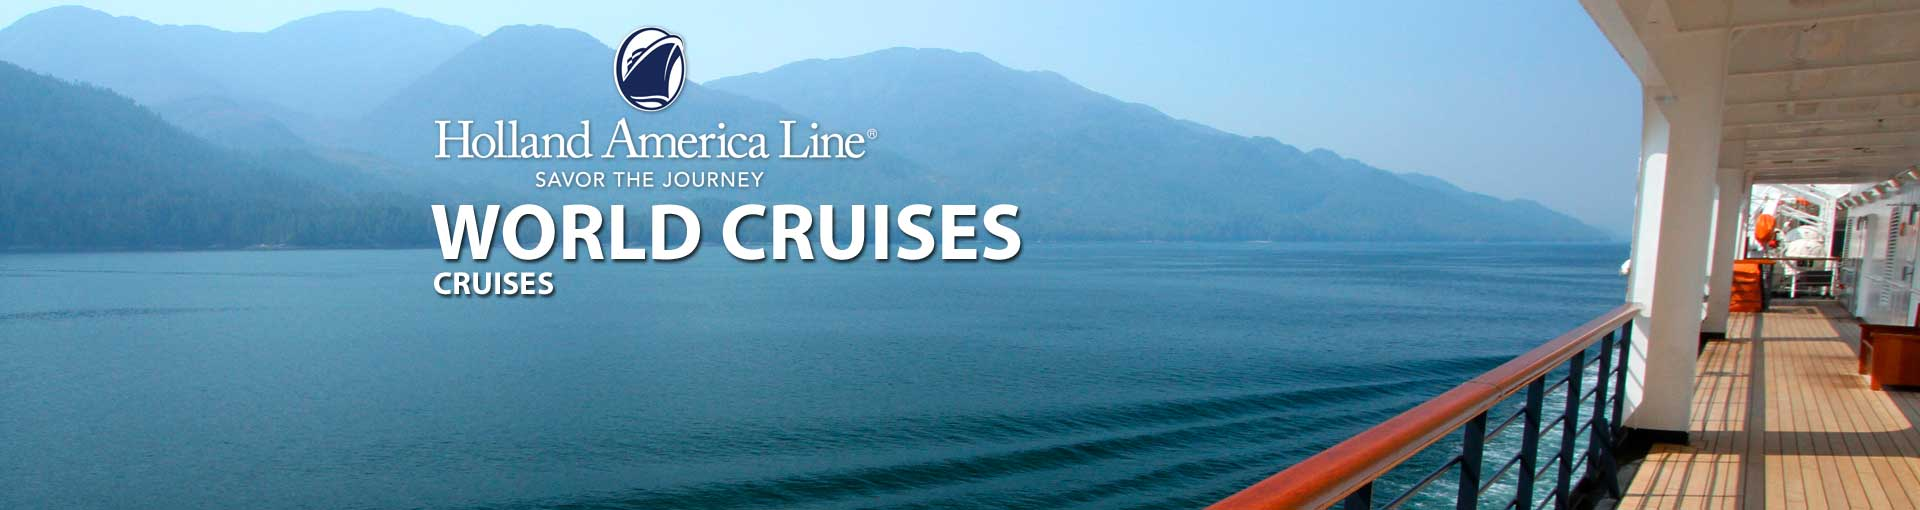 Holland America Grand Voyages World Cruises